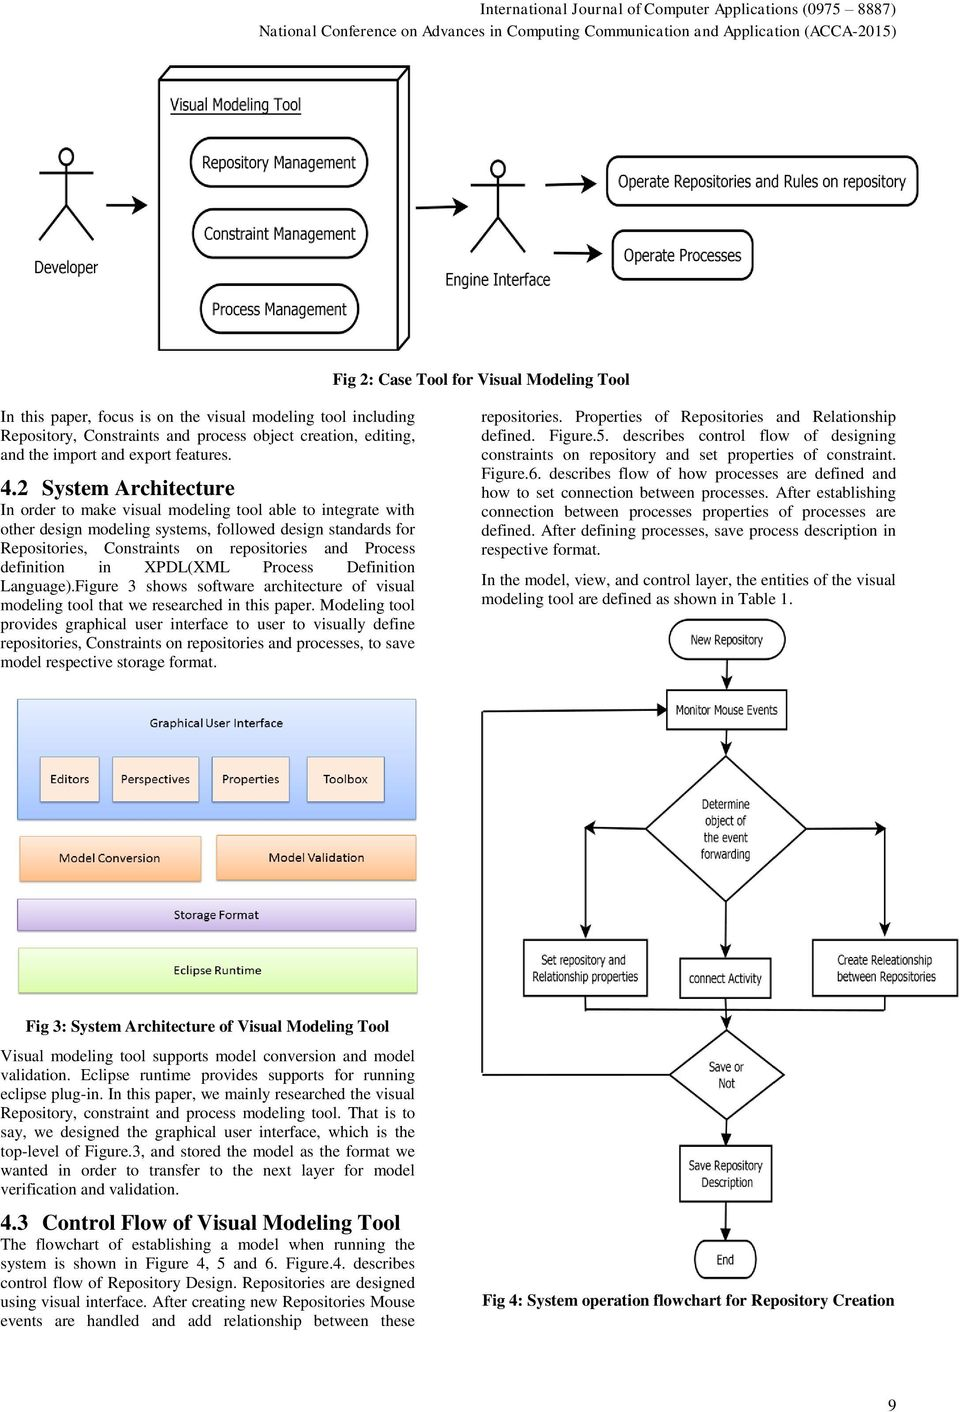 2 System Architecture In order to make visual modeling tool able to integrate with other design modeling systems, followed design standards for Repositories, Constraints on repositories and Process